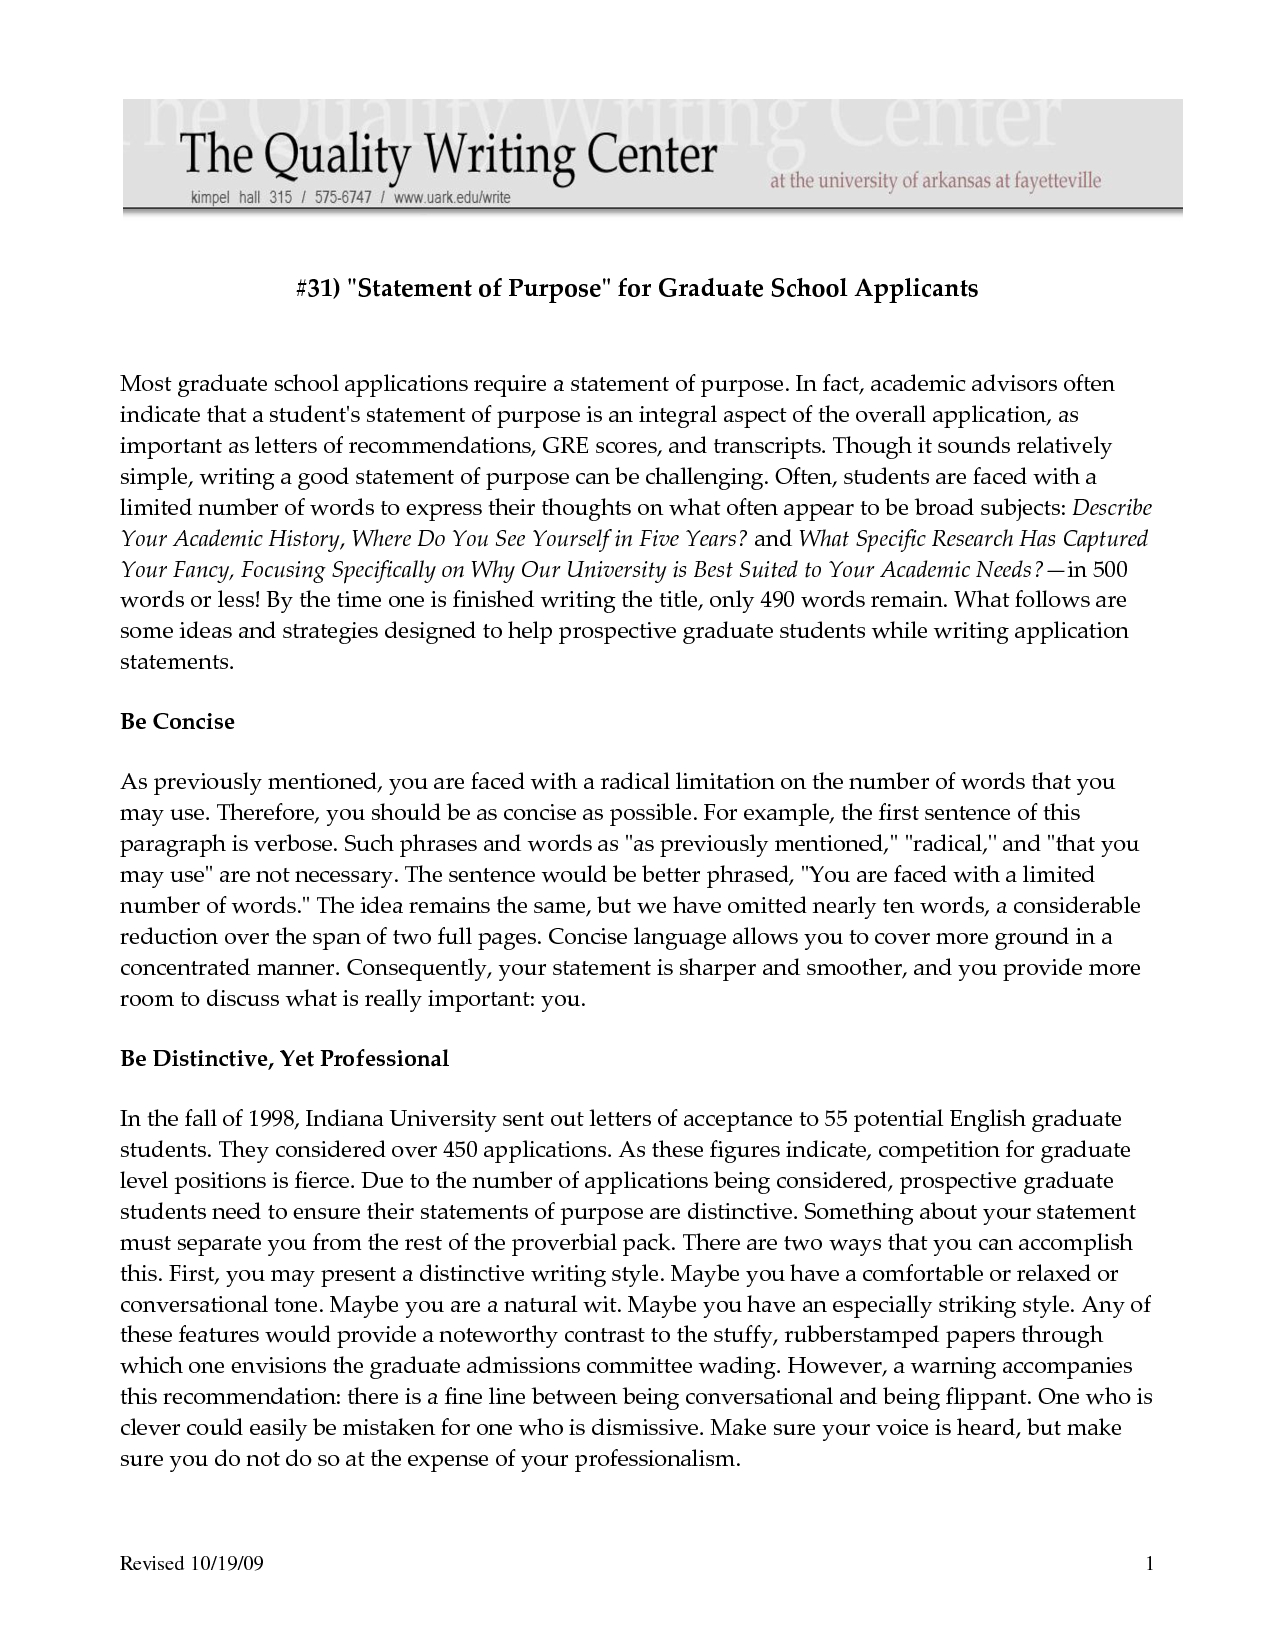 letter of intent template graduate school example-Sample Personal Statements Graduate School 1-i